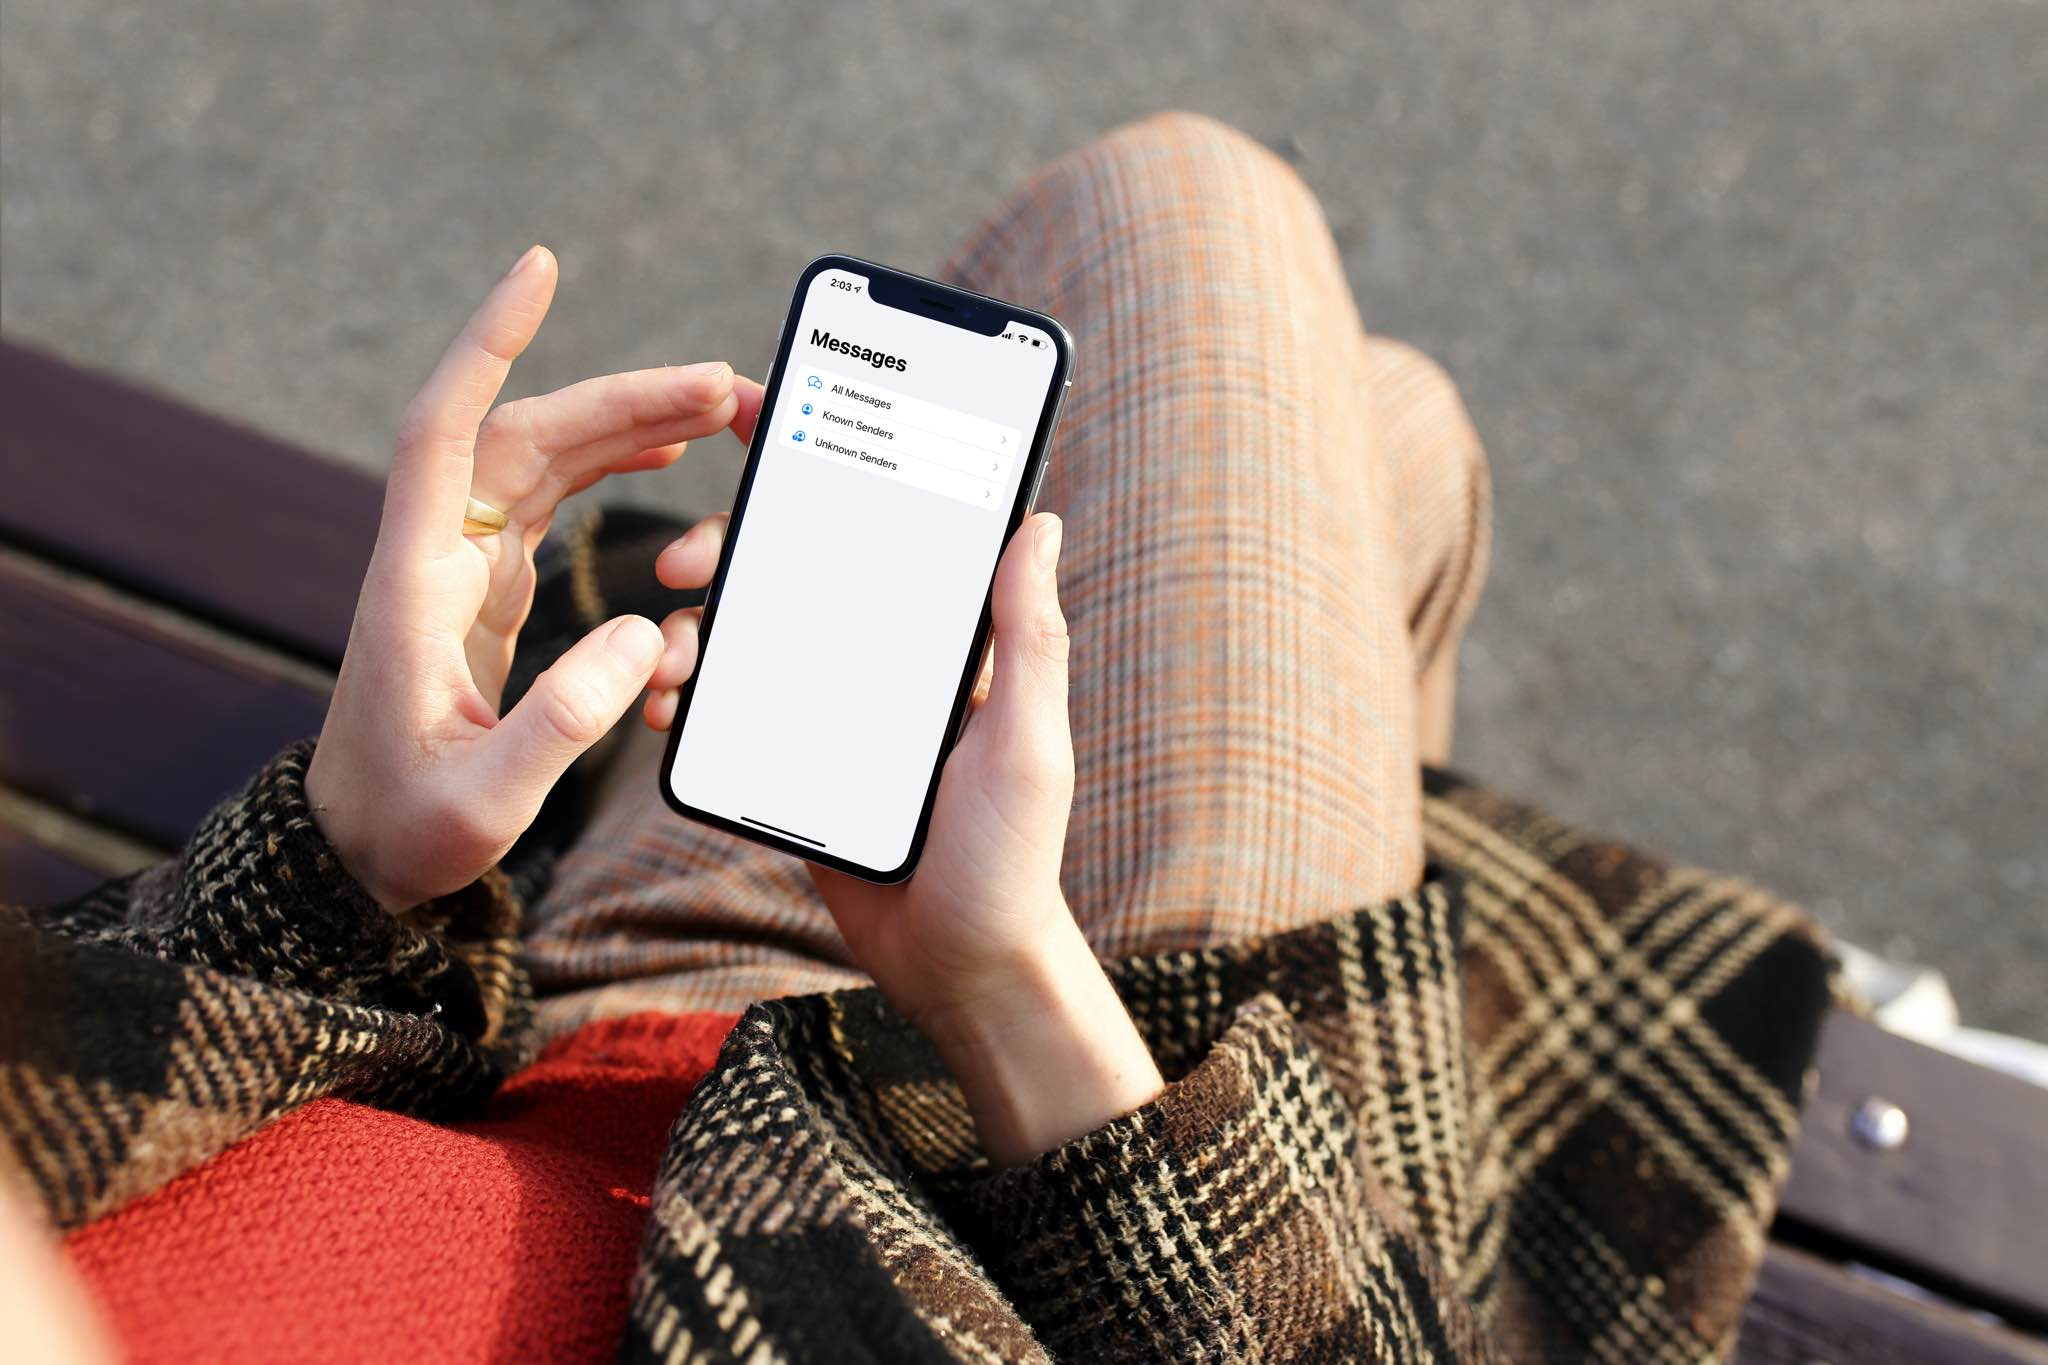 iOS 14 Messages - new message filtering interface on iPhone